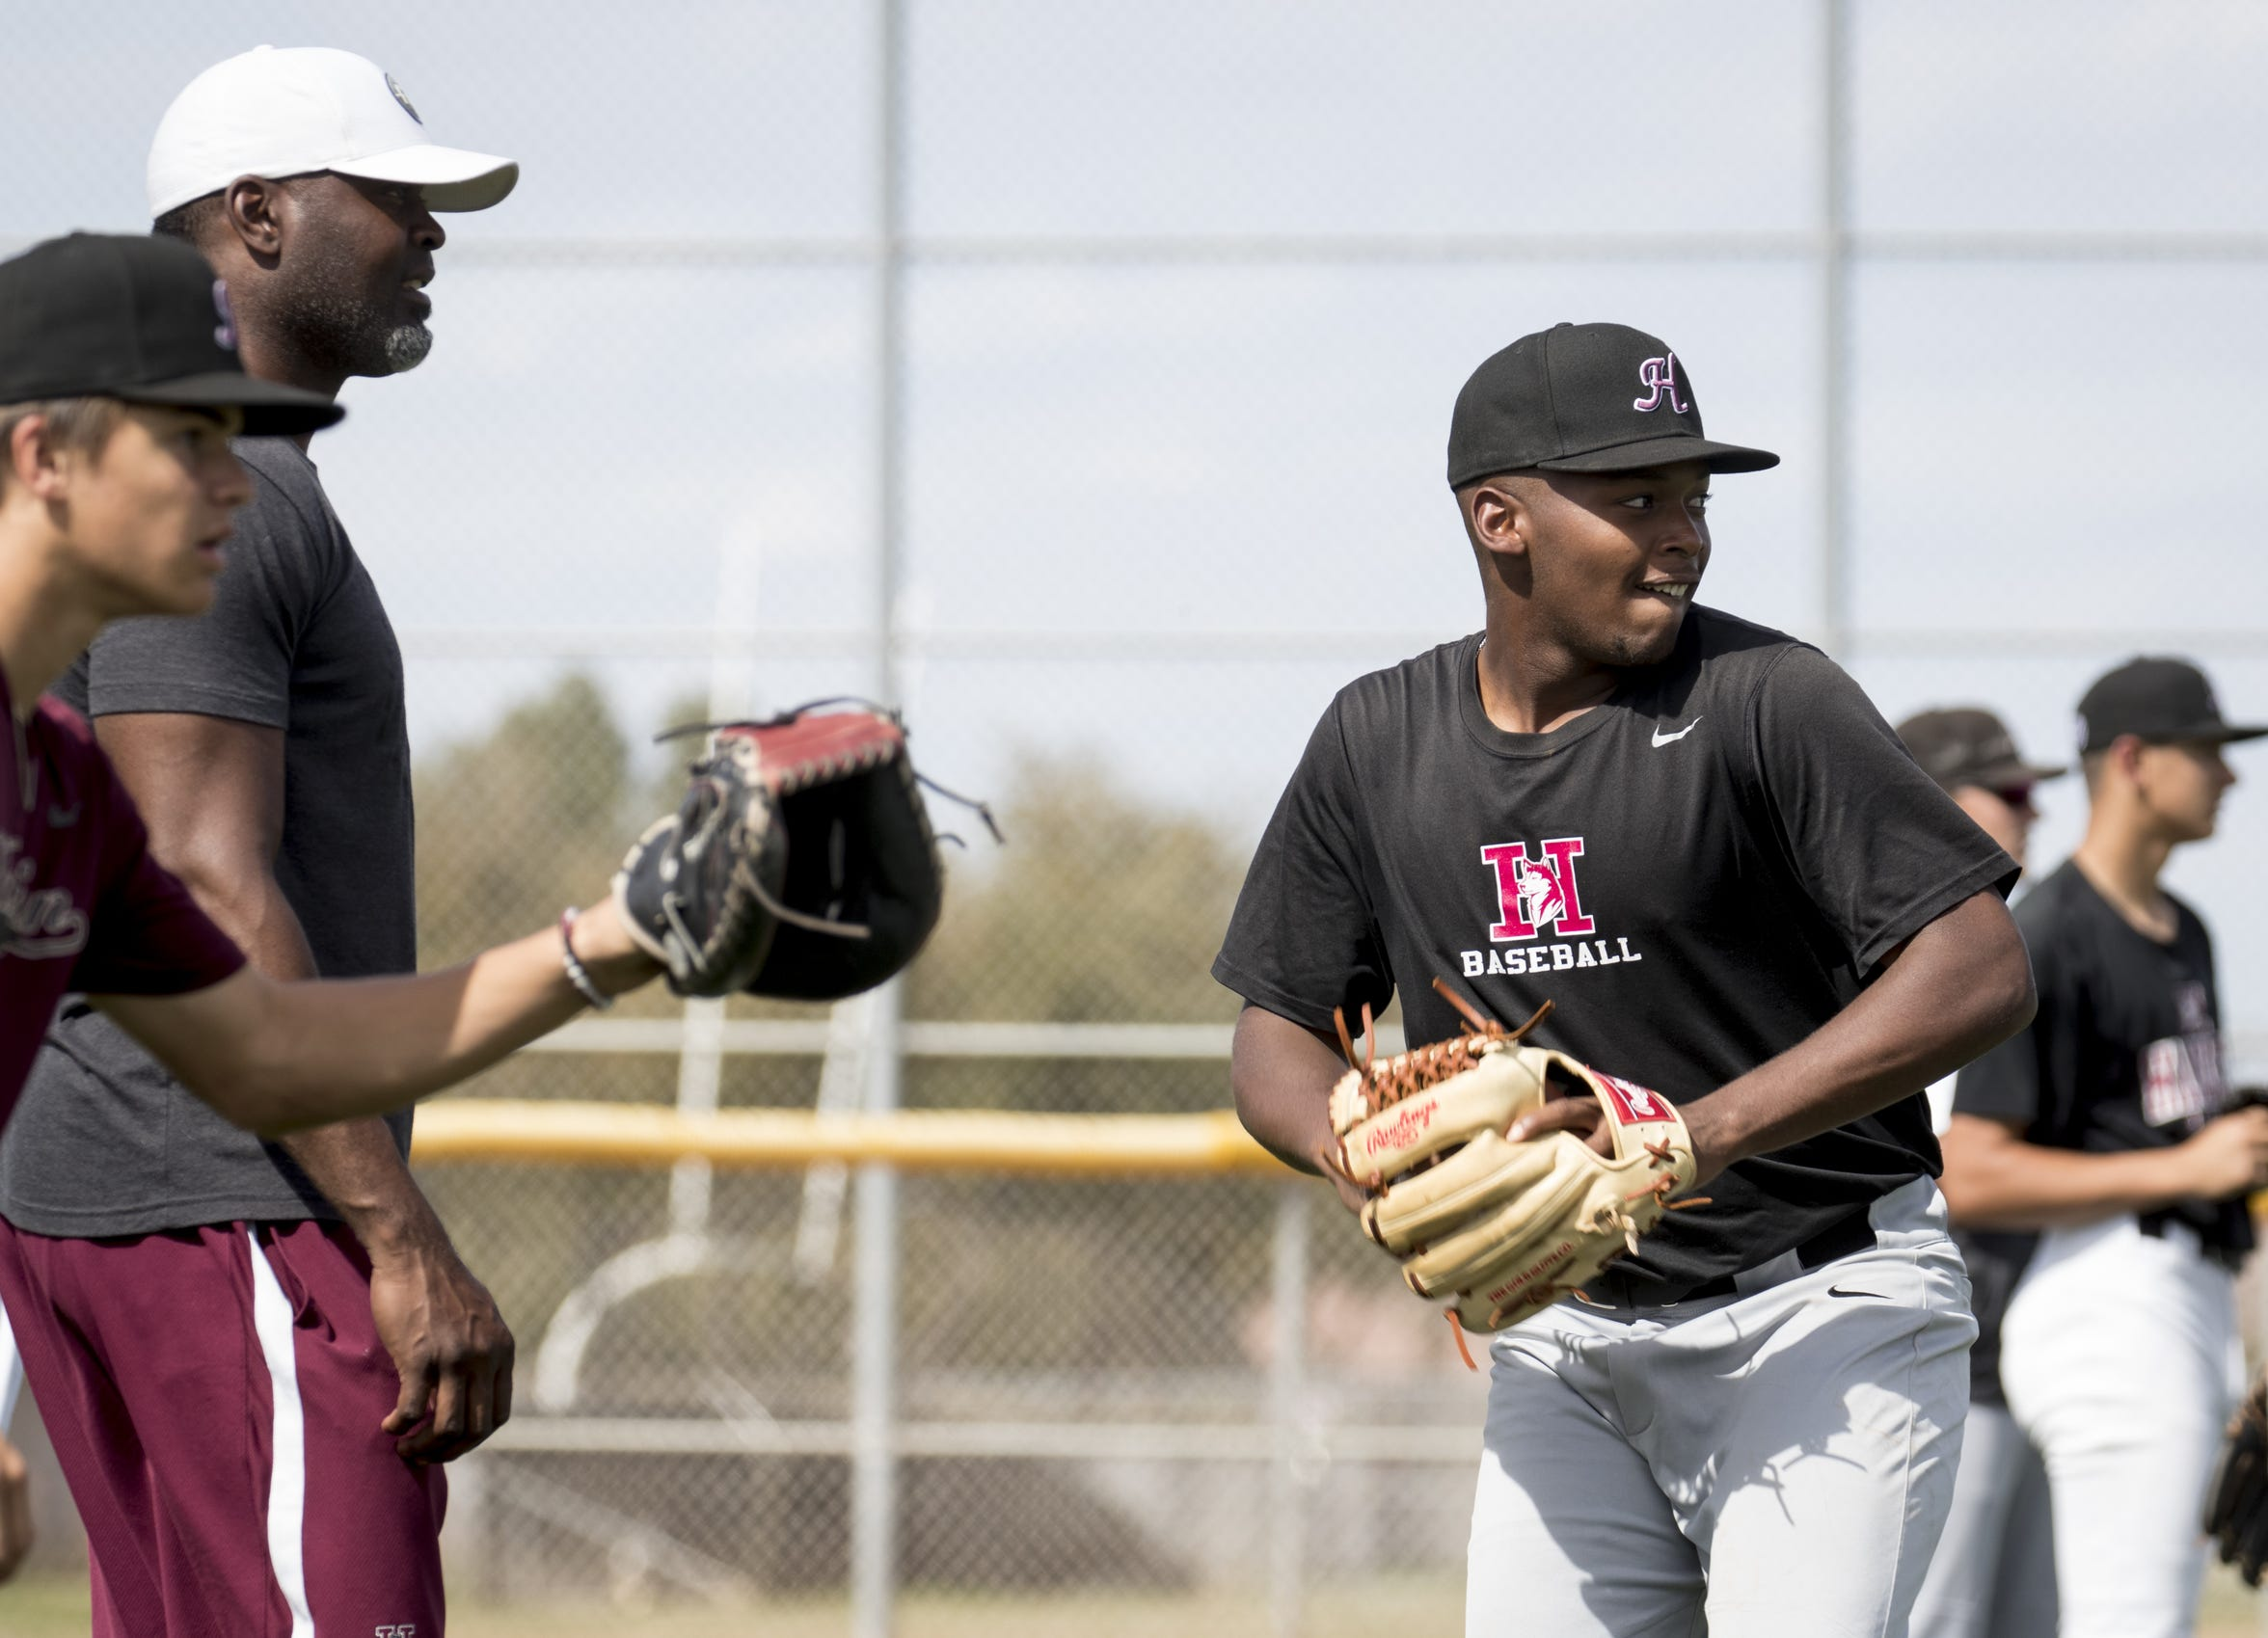 Jamie Brewington (second from left) works with Tally Wright (right front) during baseball practice, March 6, 2019, at Hamilton High School.